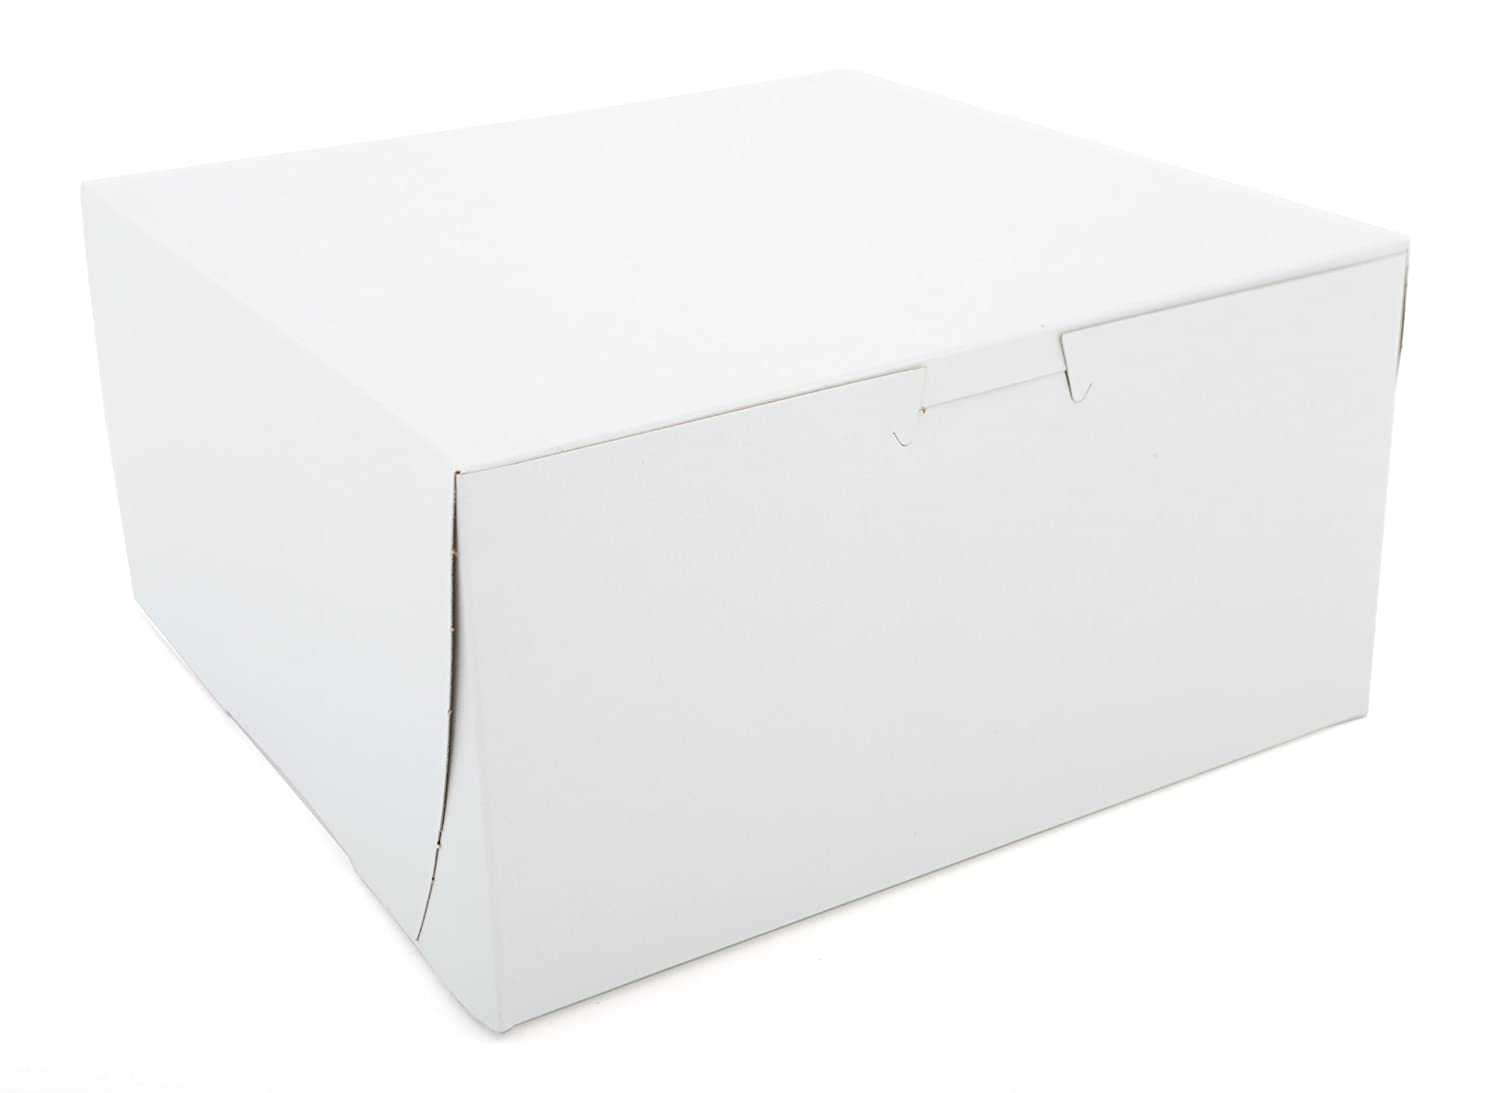 Southern Champion Tray 0941 Clay-Coated Popular popular Paperboard Premium Kraft Ranking TOP7